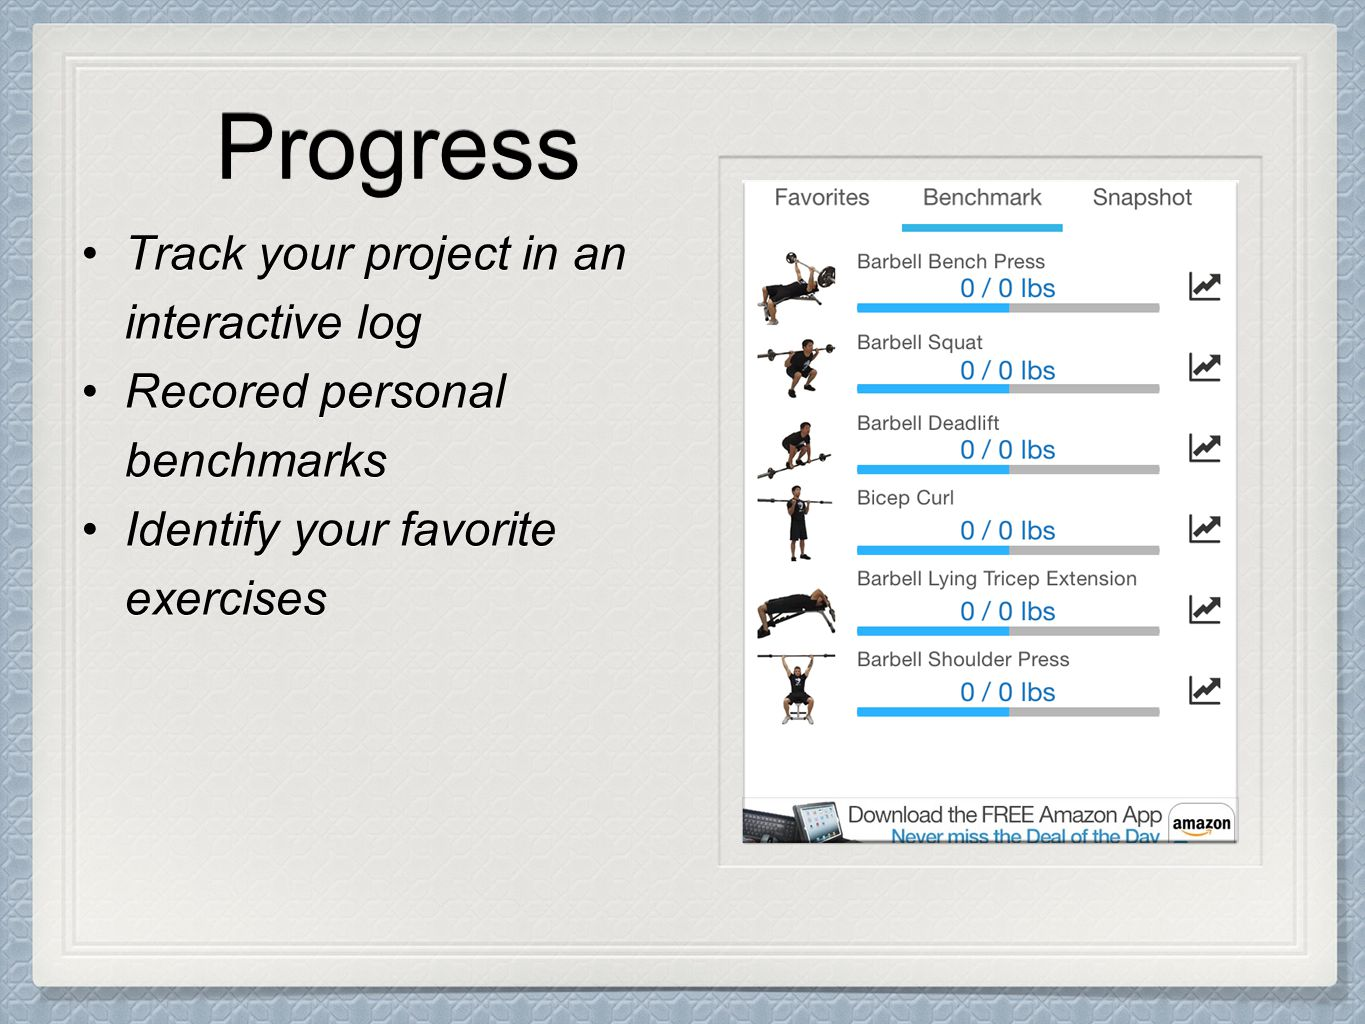 Progress Track your project in an interactive logTrack your project in an interactive log Recored personal benchmarksRecored personal benchmarks Identify your favorite exercisesIdentify your favorite exercises